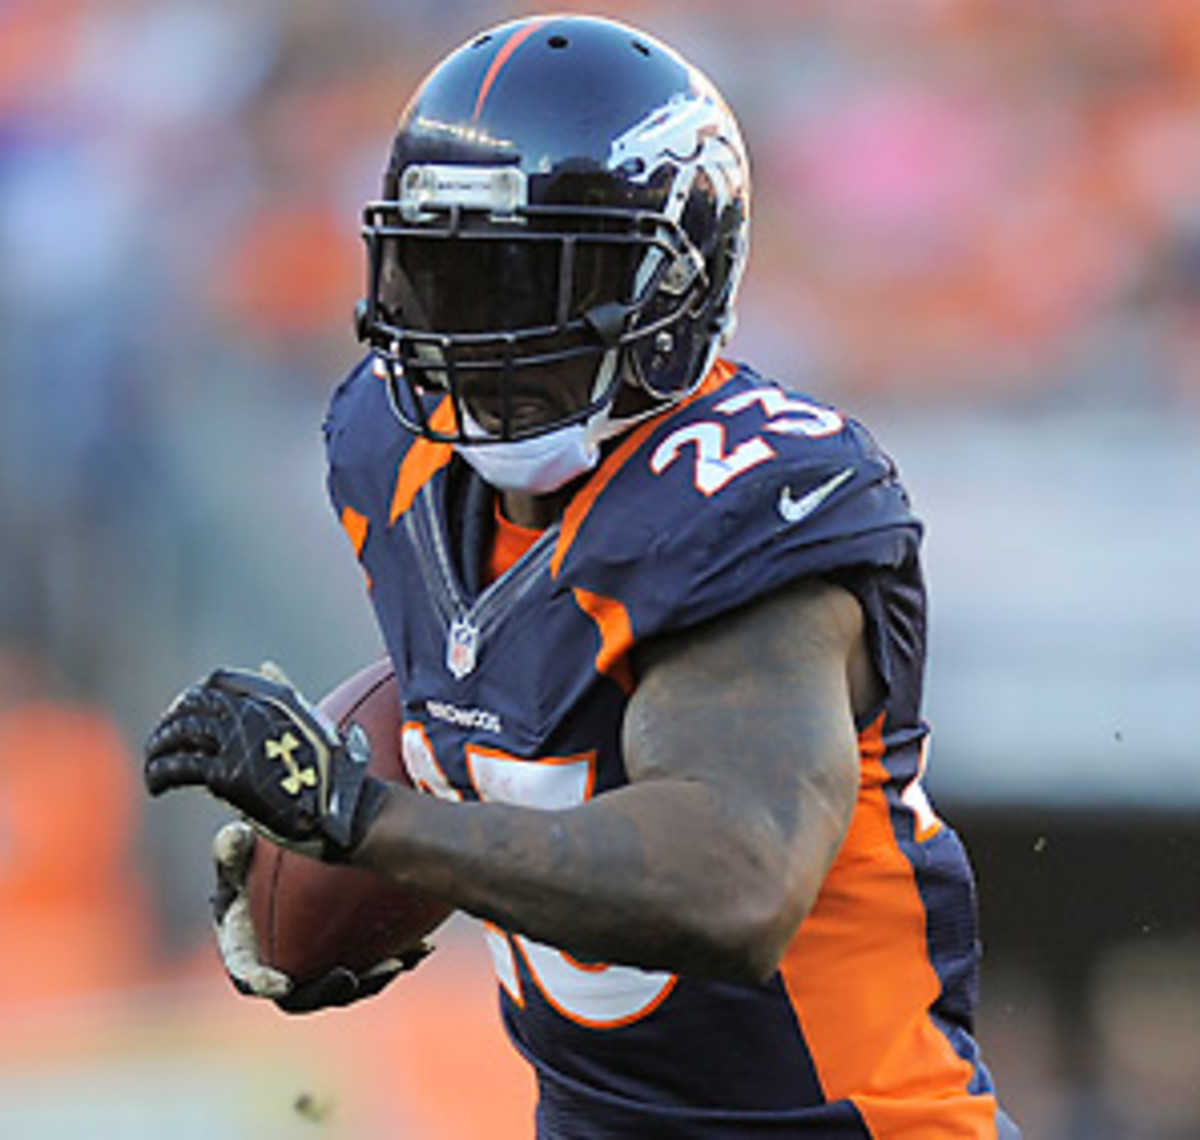 Willis McGahee averaged 4.4 yards per carry in 2012 before his injury.